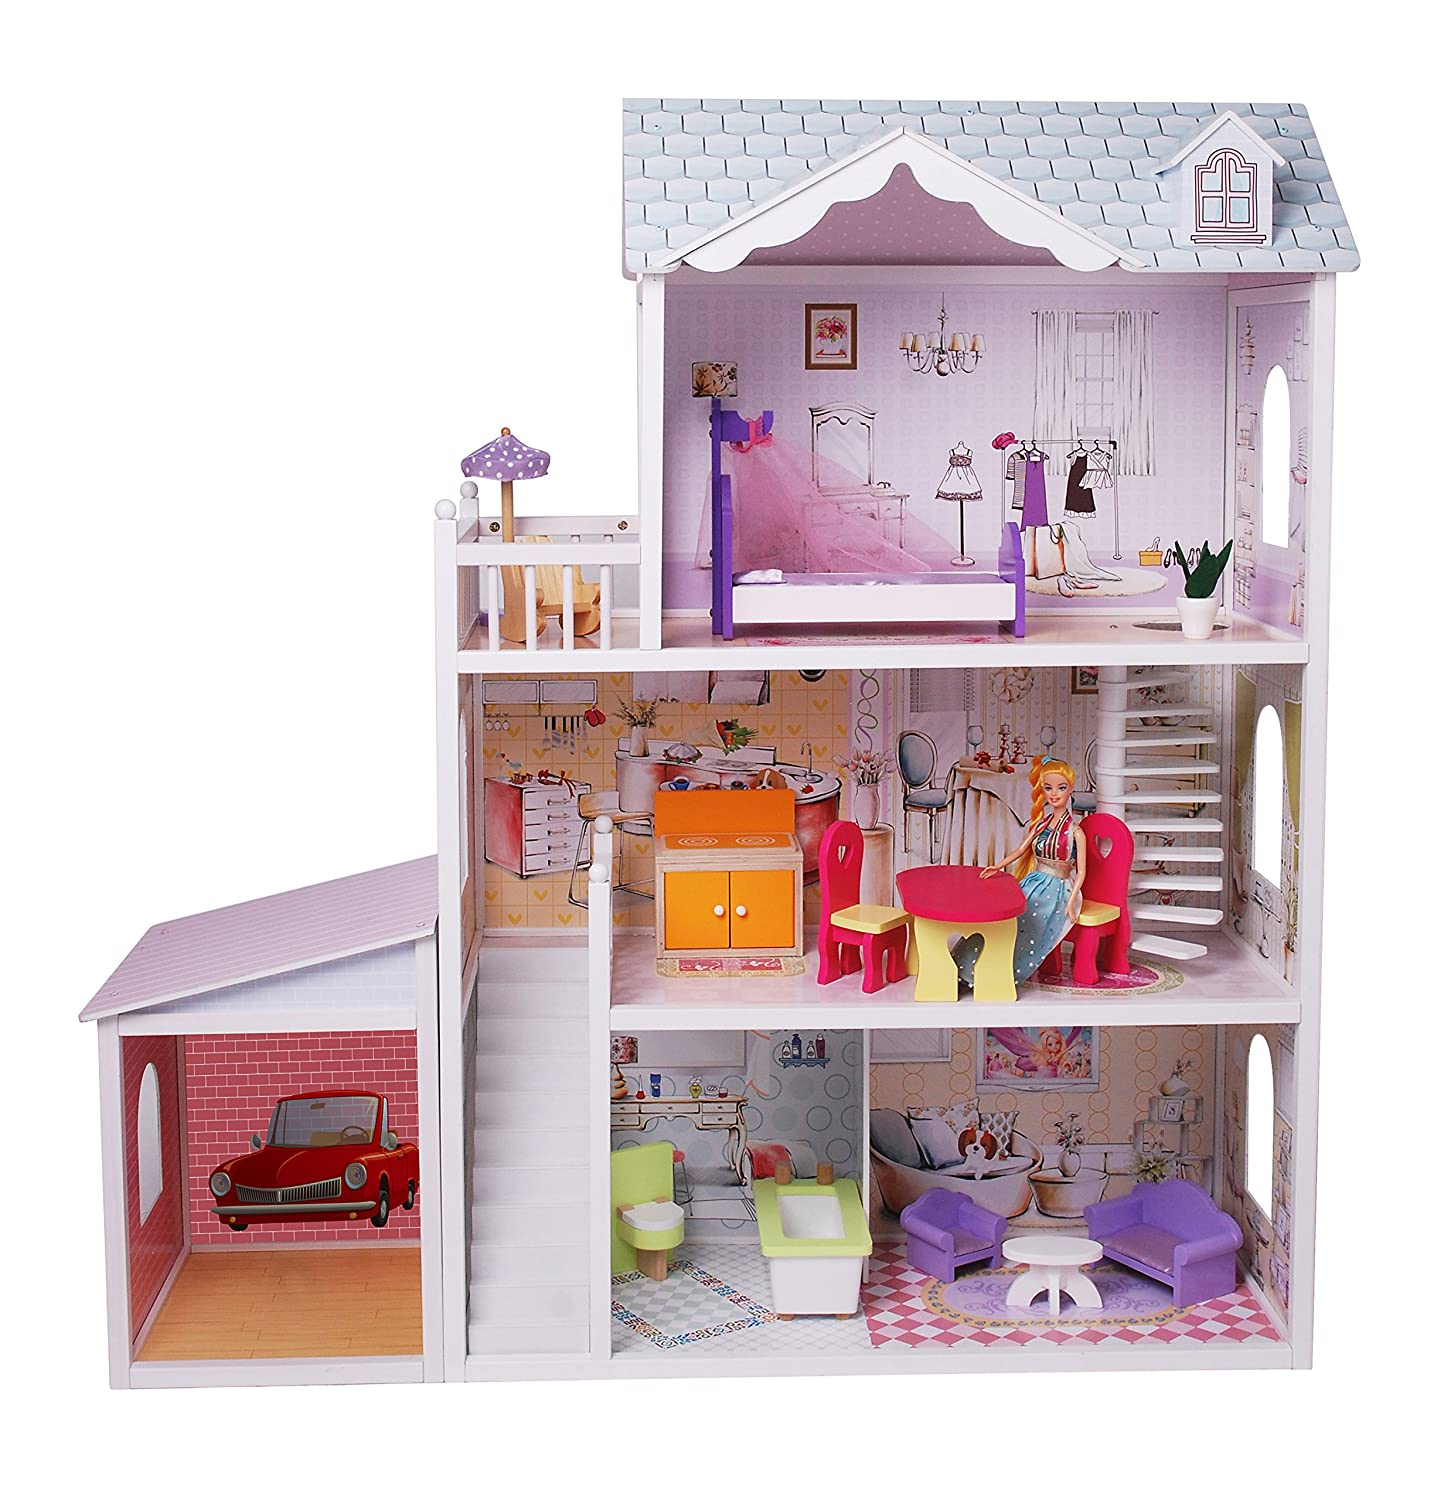 4 Of The Best Dollhouse Kits For Beginners